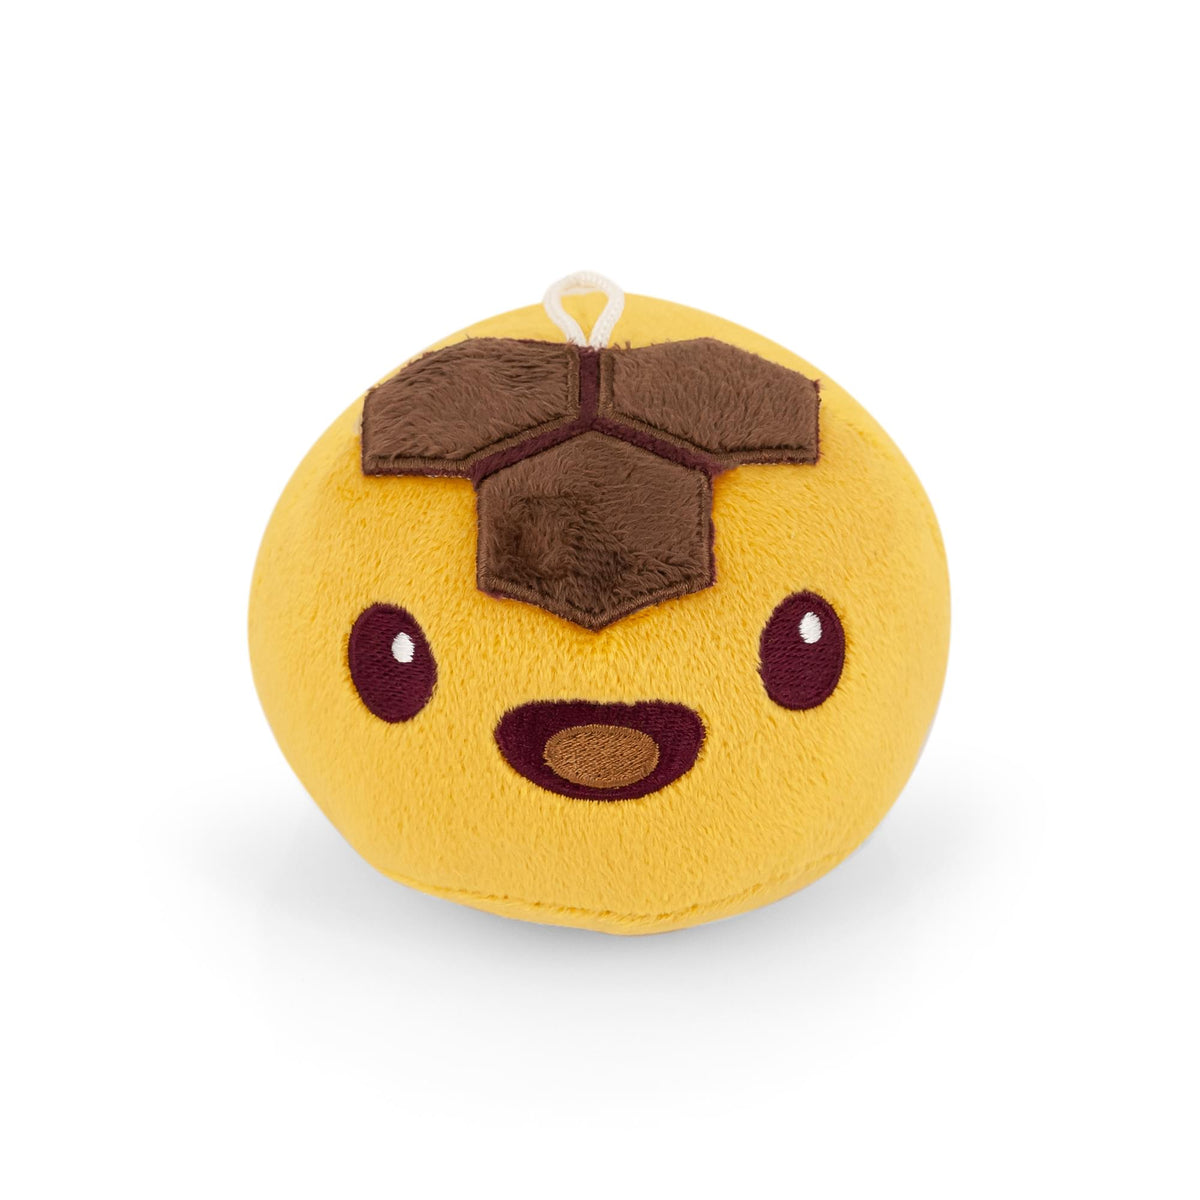 Slime Rancher Plush Toy Bean Bag Plushie | Honey Slime, by Imaginary People